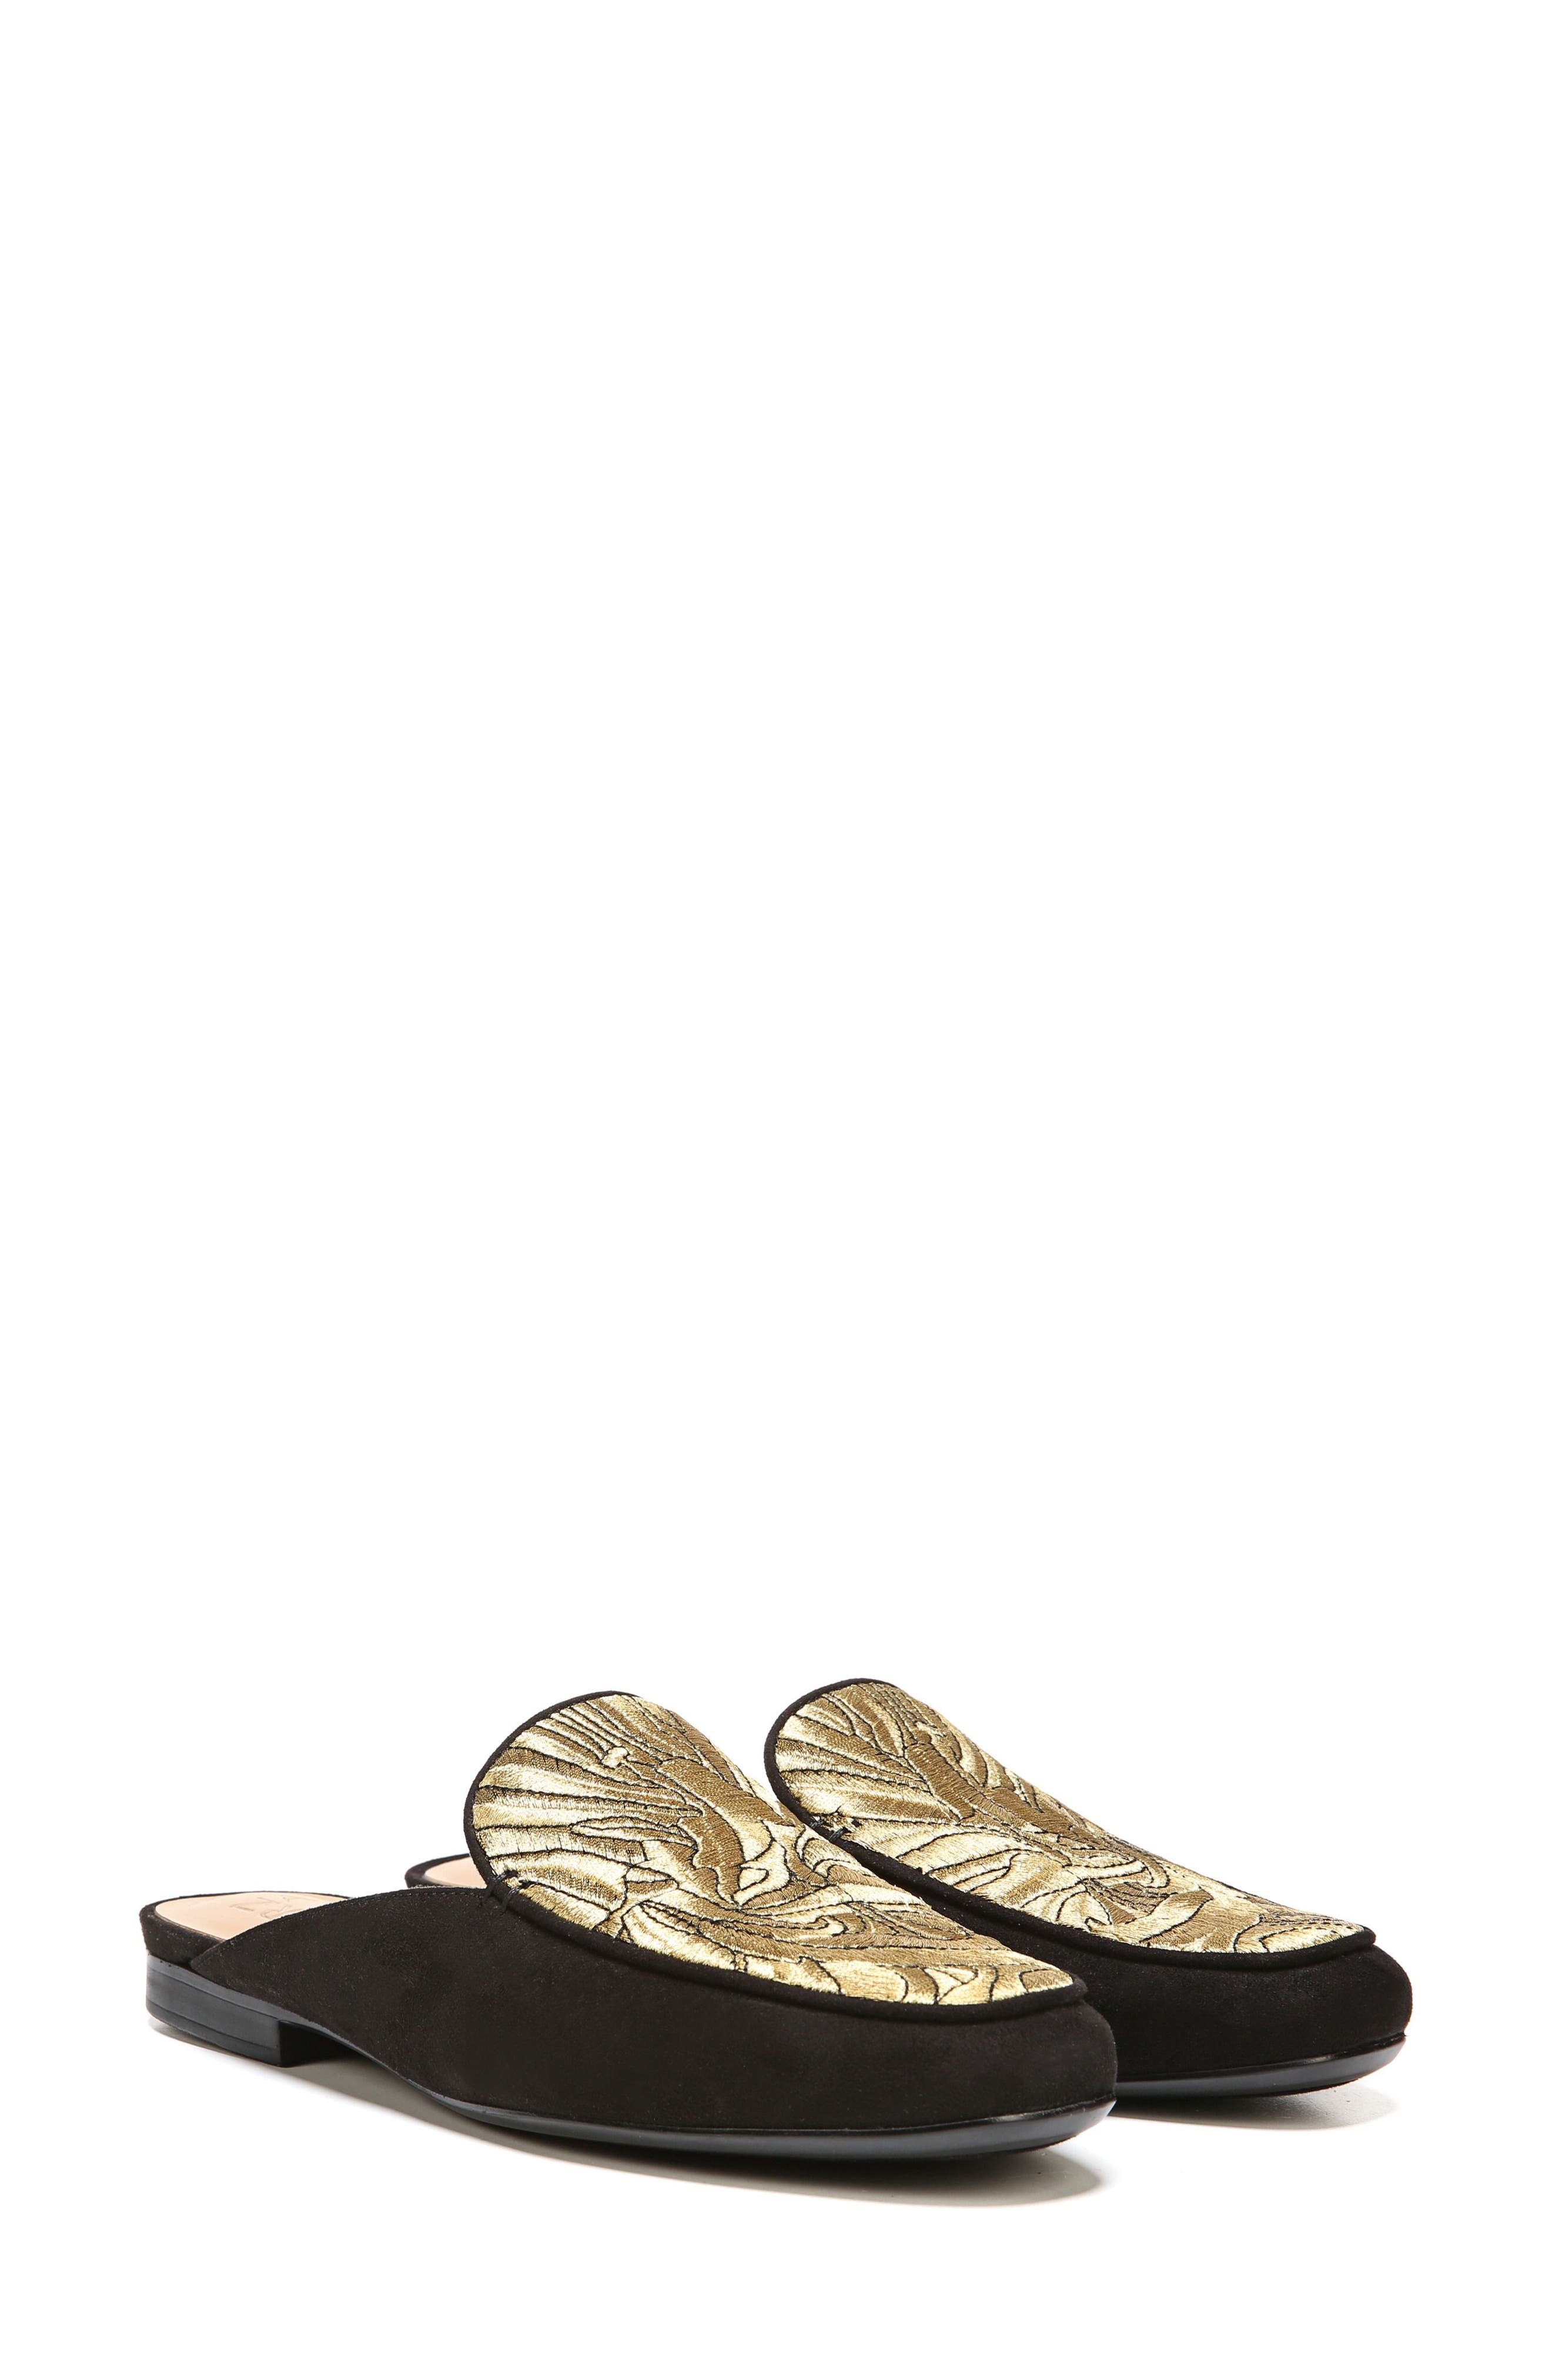 Eden II Embroidered Mule,                             Alternate thumbnail 7, color,                             Black/ Gold Leather